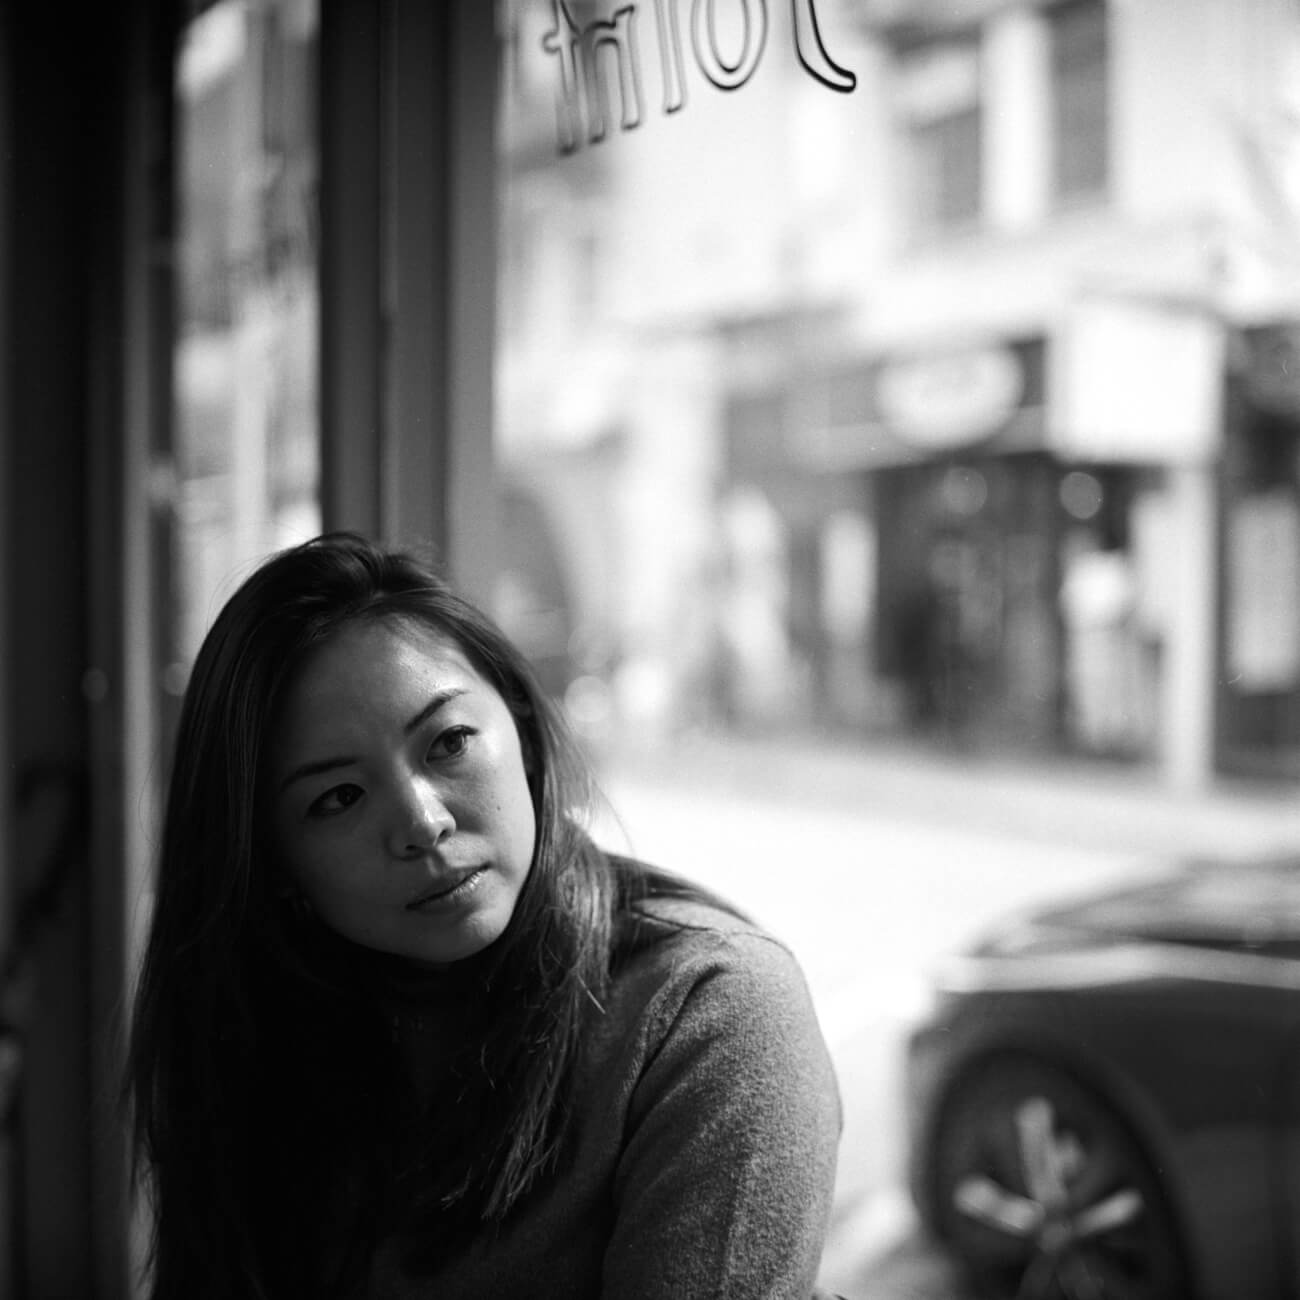 Analog-film-review-kodak-tri-x-trix-400-tahusa-bw-black-white-negative-joint-hong-kong-cafe-rolleiflex-2.8F